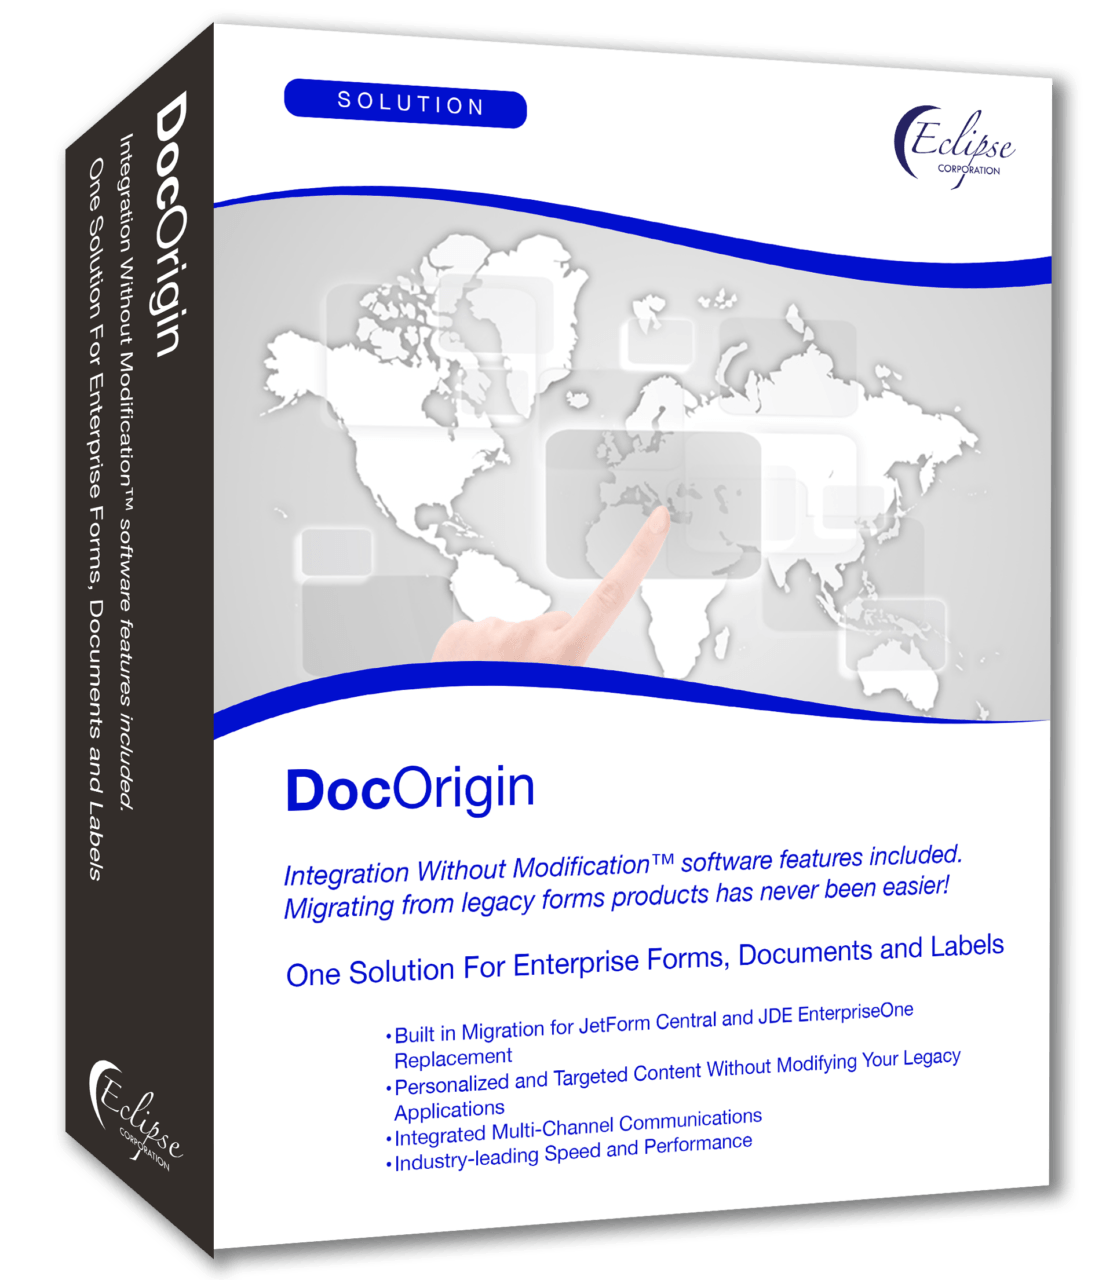 Graphic illustrating DocOrigin software for enterprise forms, checks and labels